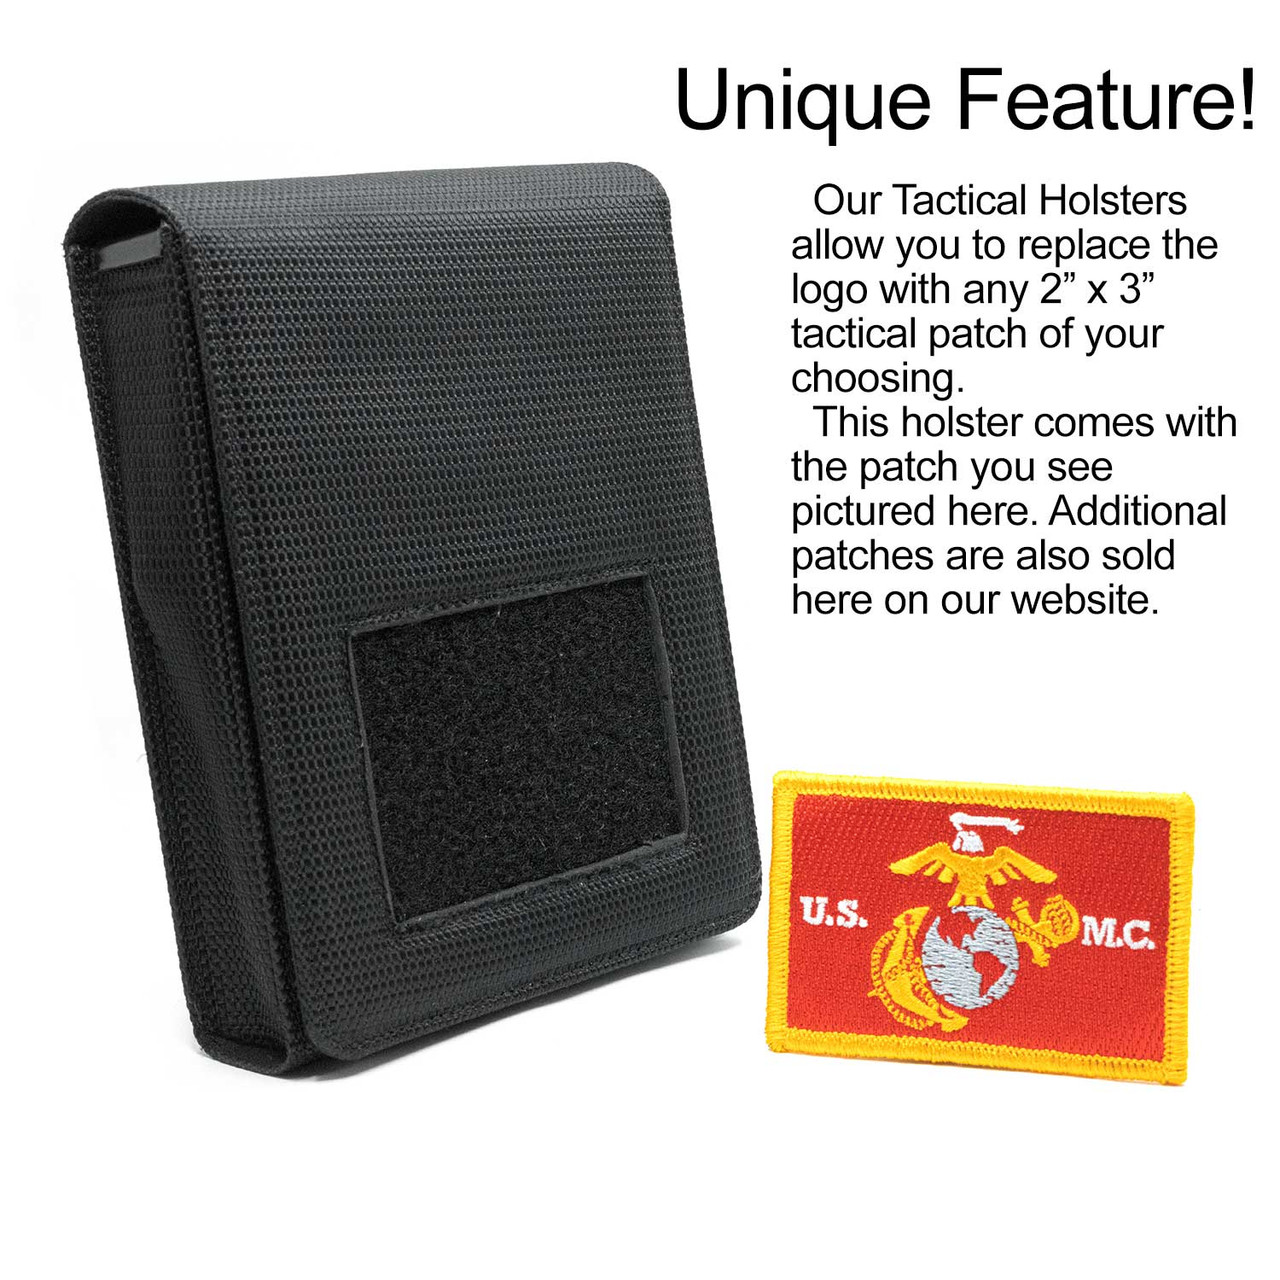 Kahr CW45 Marine Corps Tactical Patch Holster